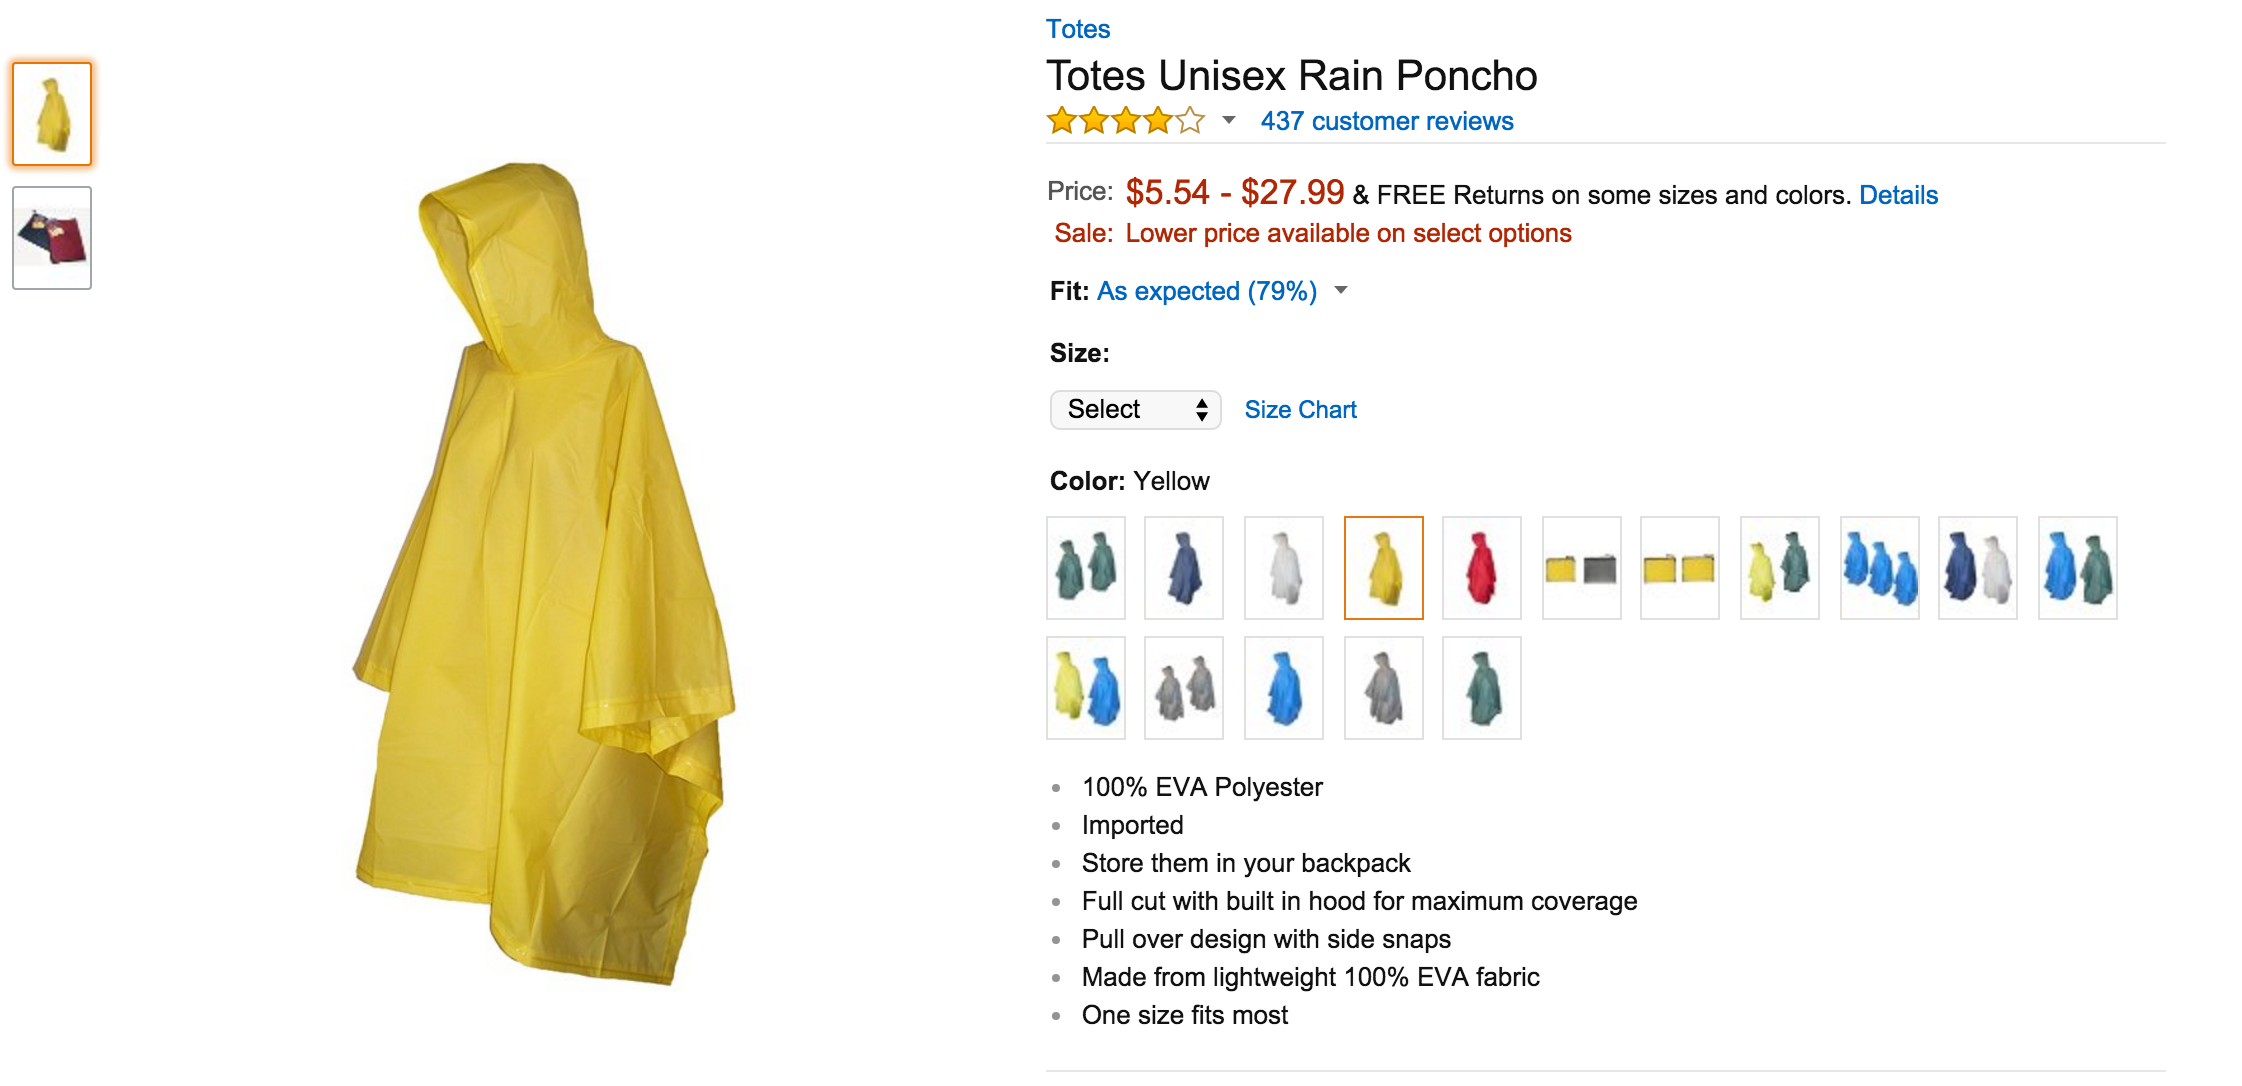 My mantra: BE PREPARED for ANYTHING! And that includes inclement weather! The RAIN PONCHO from Totes provide maximum coverage when you need it most. The lightweight EVA fabric makes them easy to slip on, and side snaps keep them securely in place. A pull over hood protects your head from unwanted rain drops. AND each poncho comes with its own mesh CARRY CASE. This can squeeze into any small space in your pack! :)